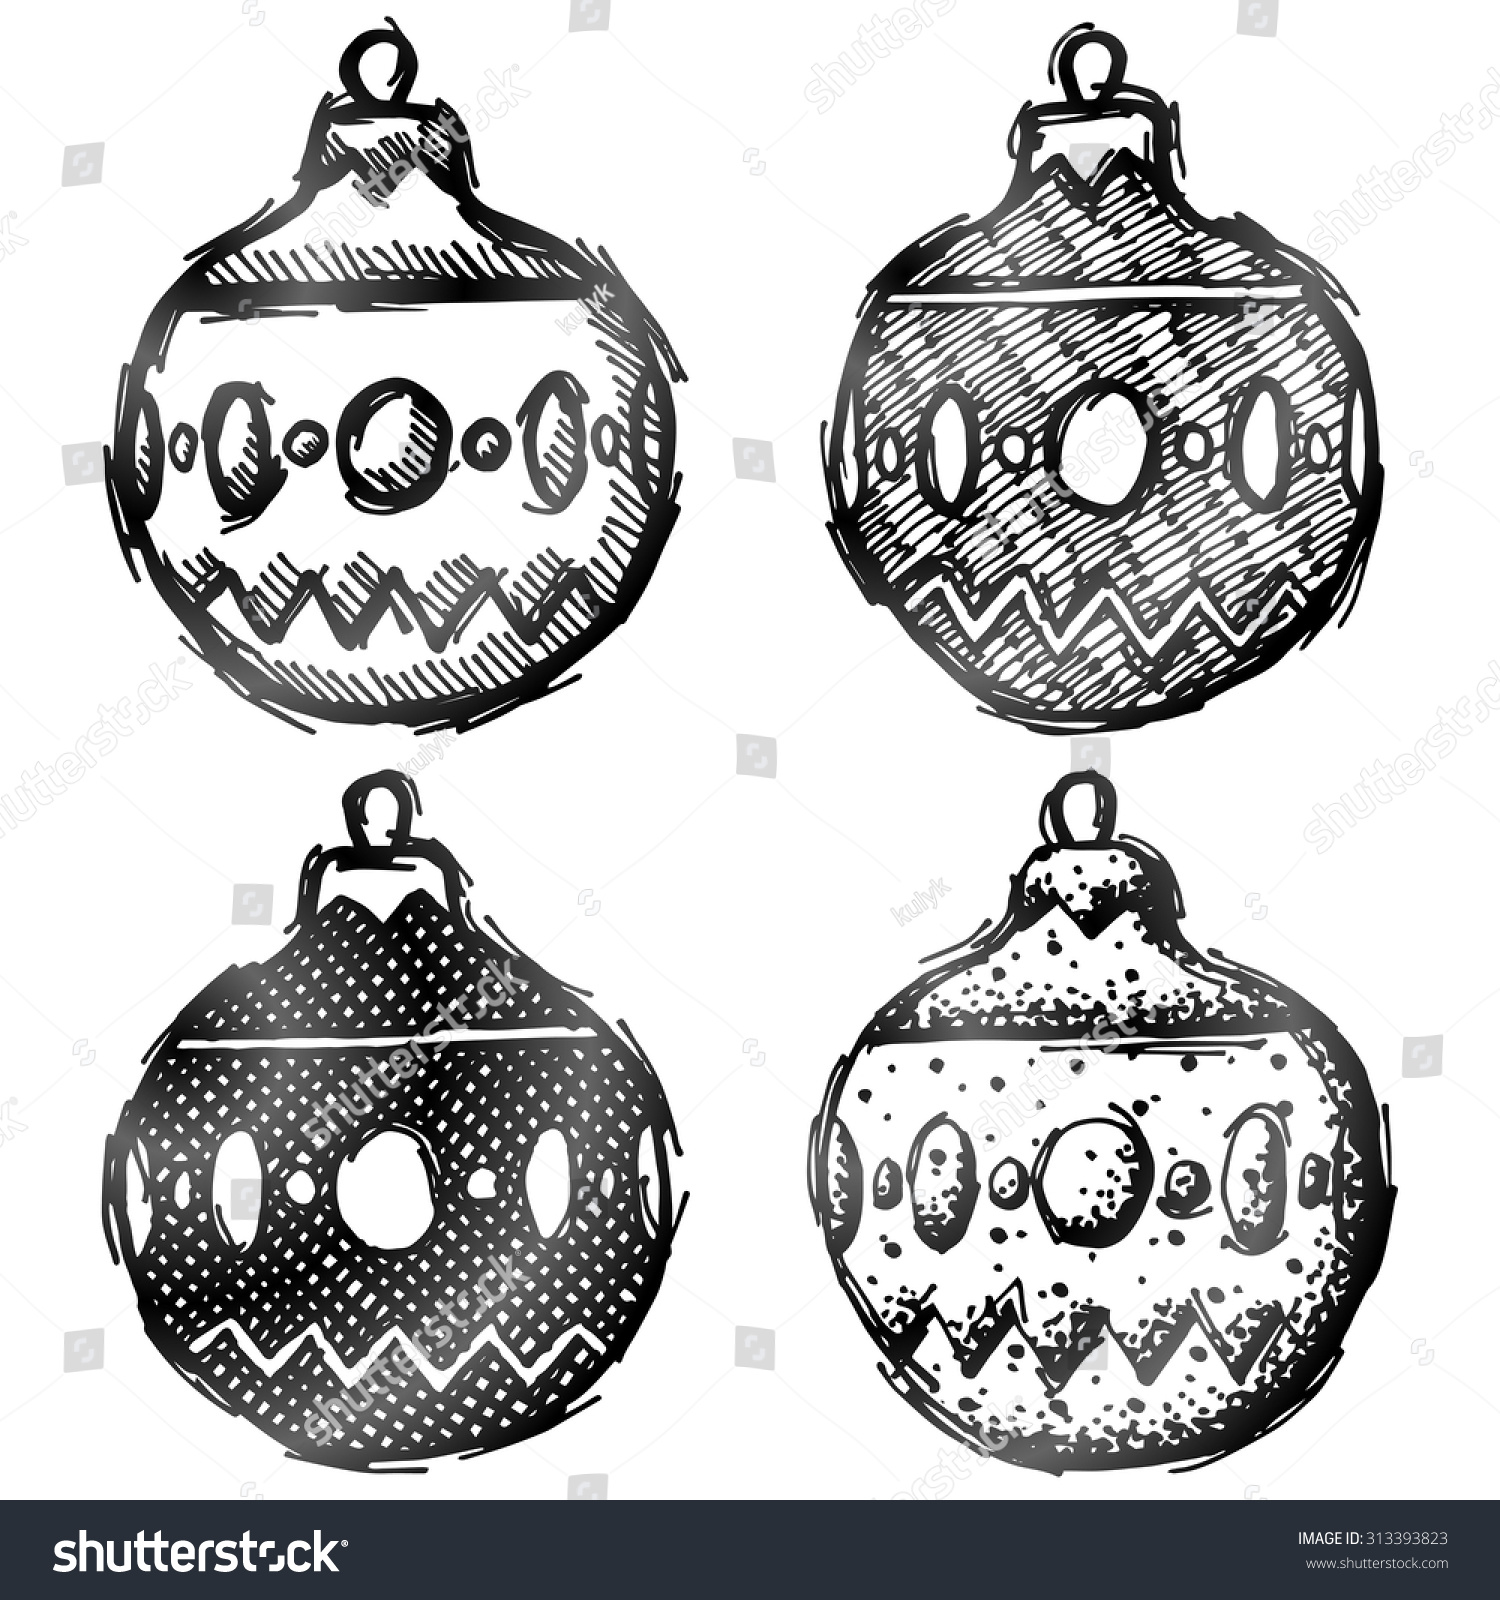 Hand Drawn Bauble (Holiday Decoration). Sketch Of Christmas Tree Ornament In Doodle Style ...